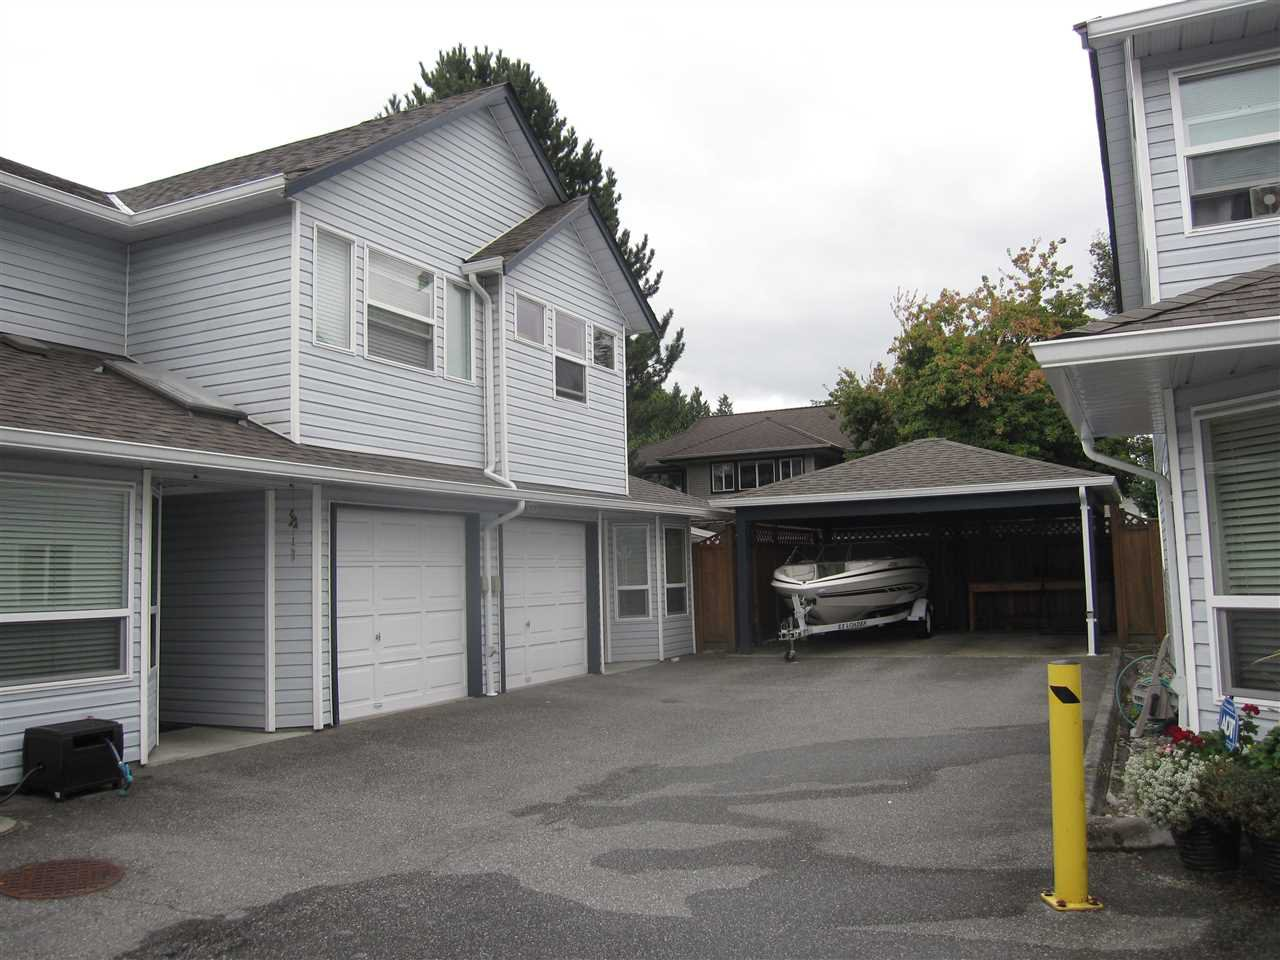 "Main Photo: 23 20630 118 Avenue in Maple Ridge: Southwest Maple Ridge Townhouse for sale in ""Westgate Terrace"" : MLS®# R2392610"